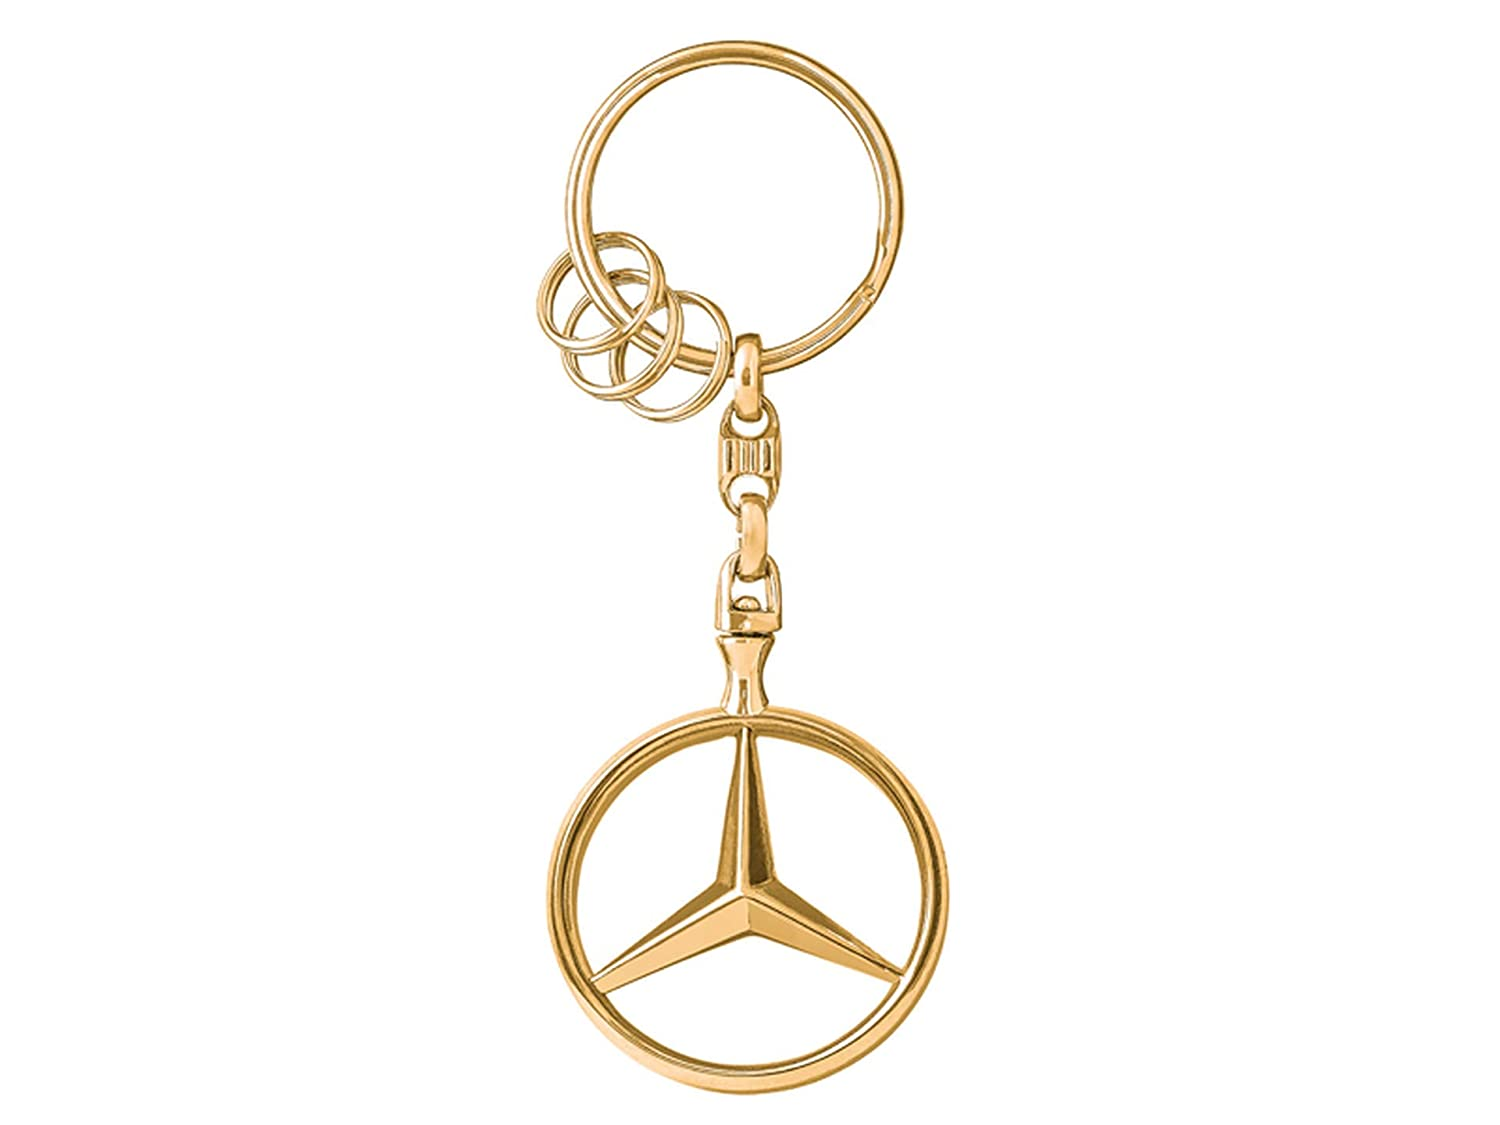 New With Box Mercedes benz key chain 100/% Authentic.